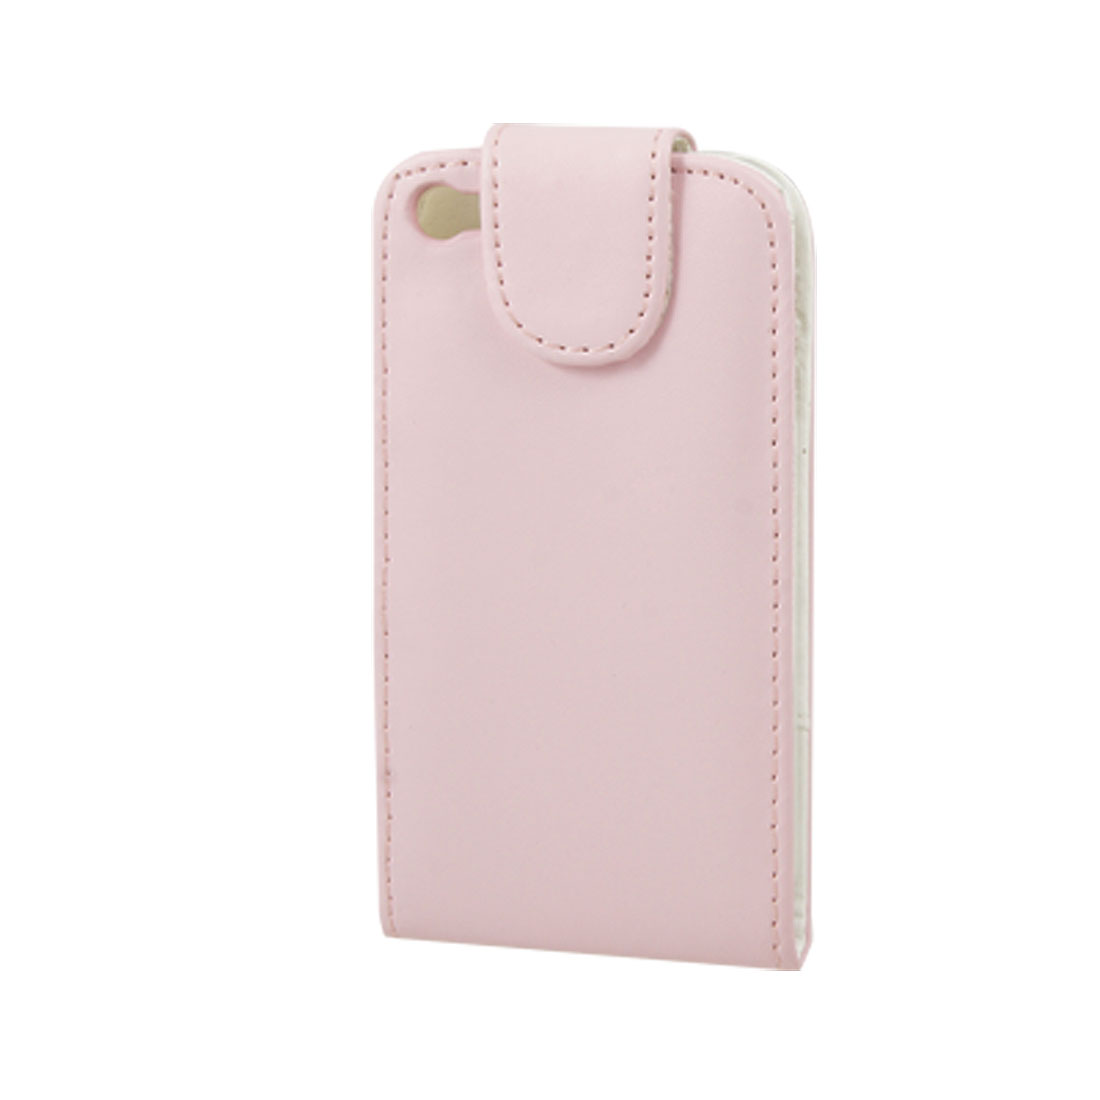 Pink Faux Leather Magnetic Closure Case for iPhone 4 4G